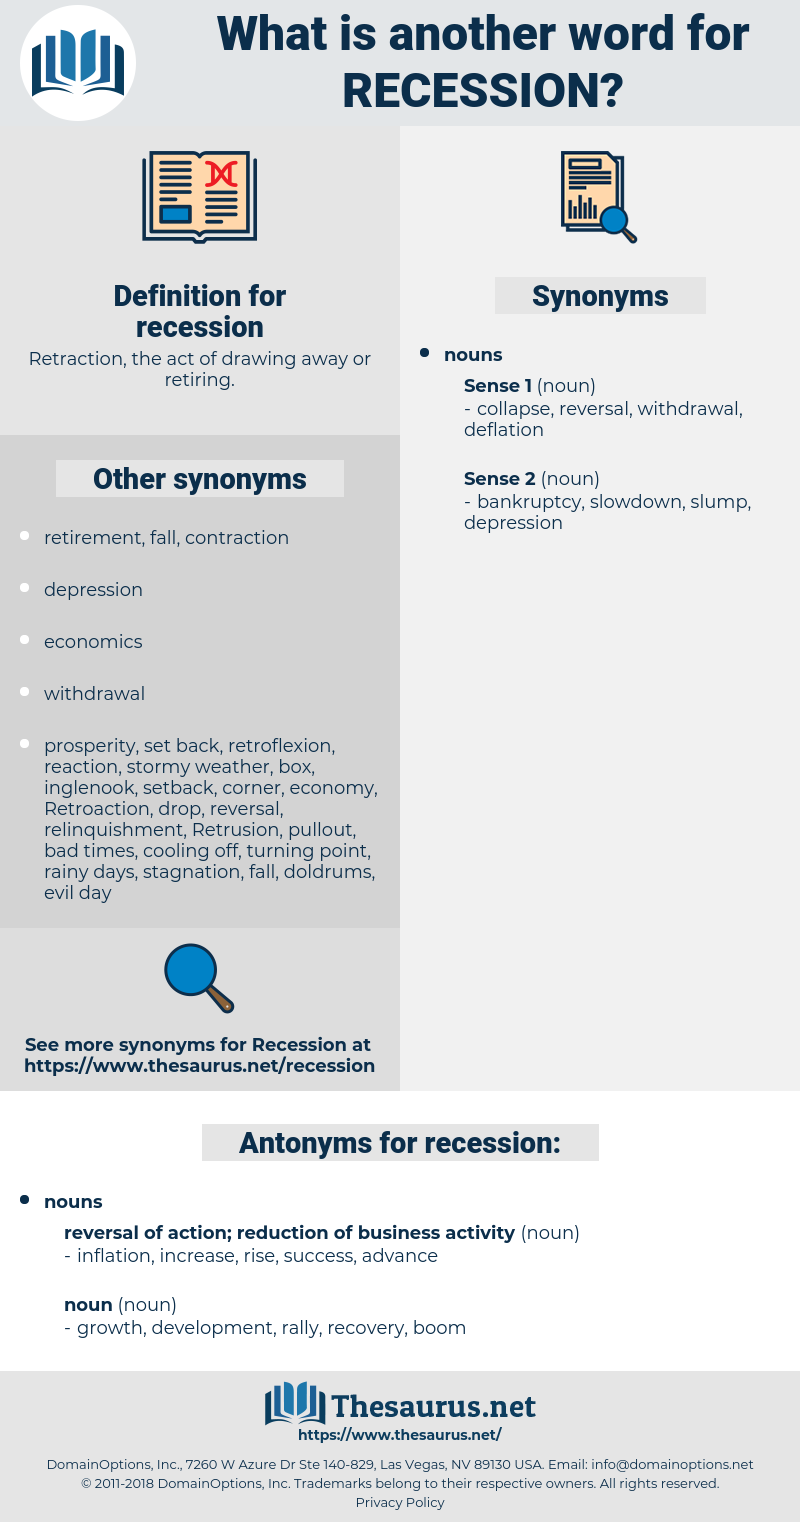 synonyms for recession - thesaurus